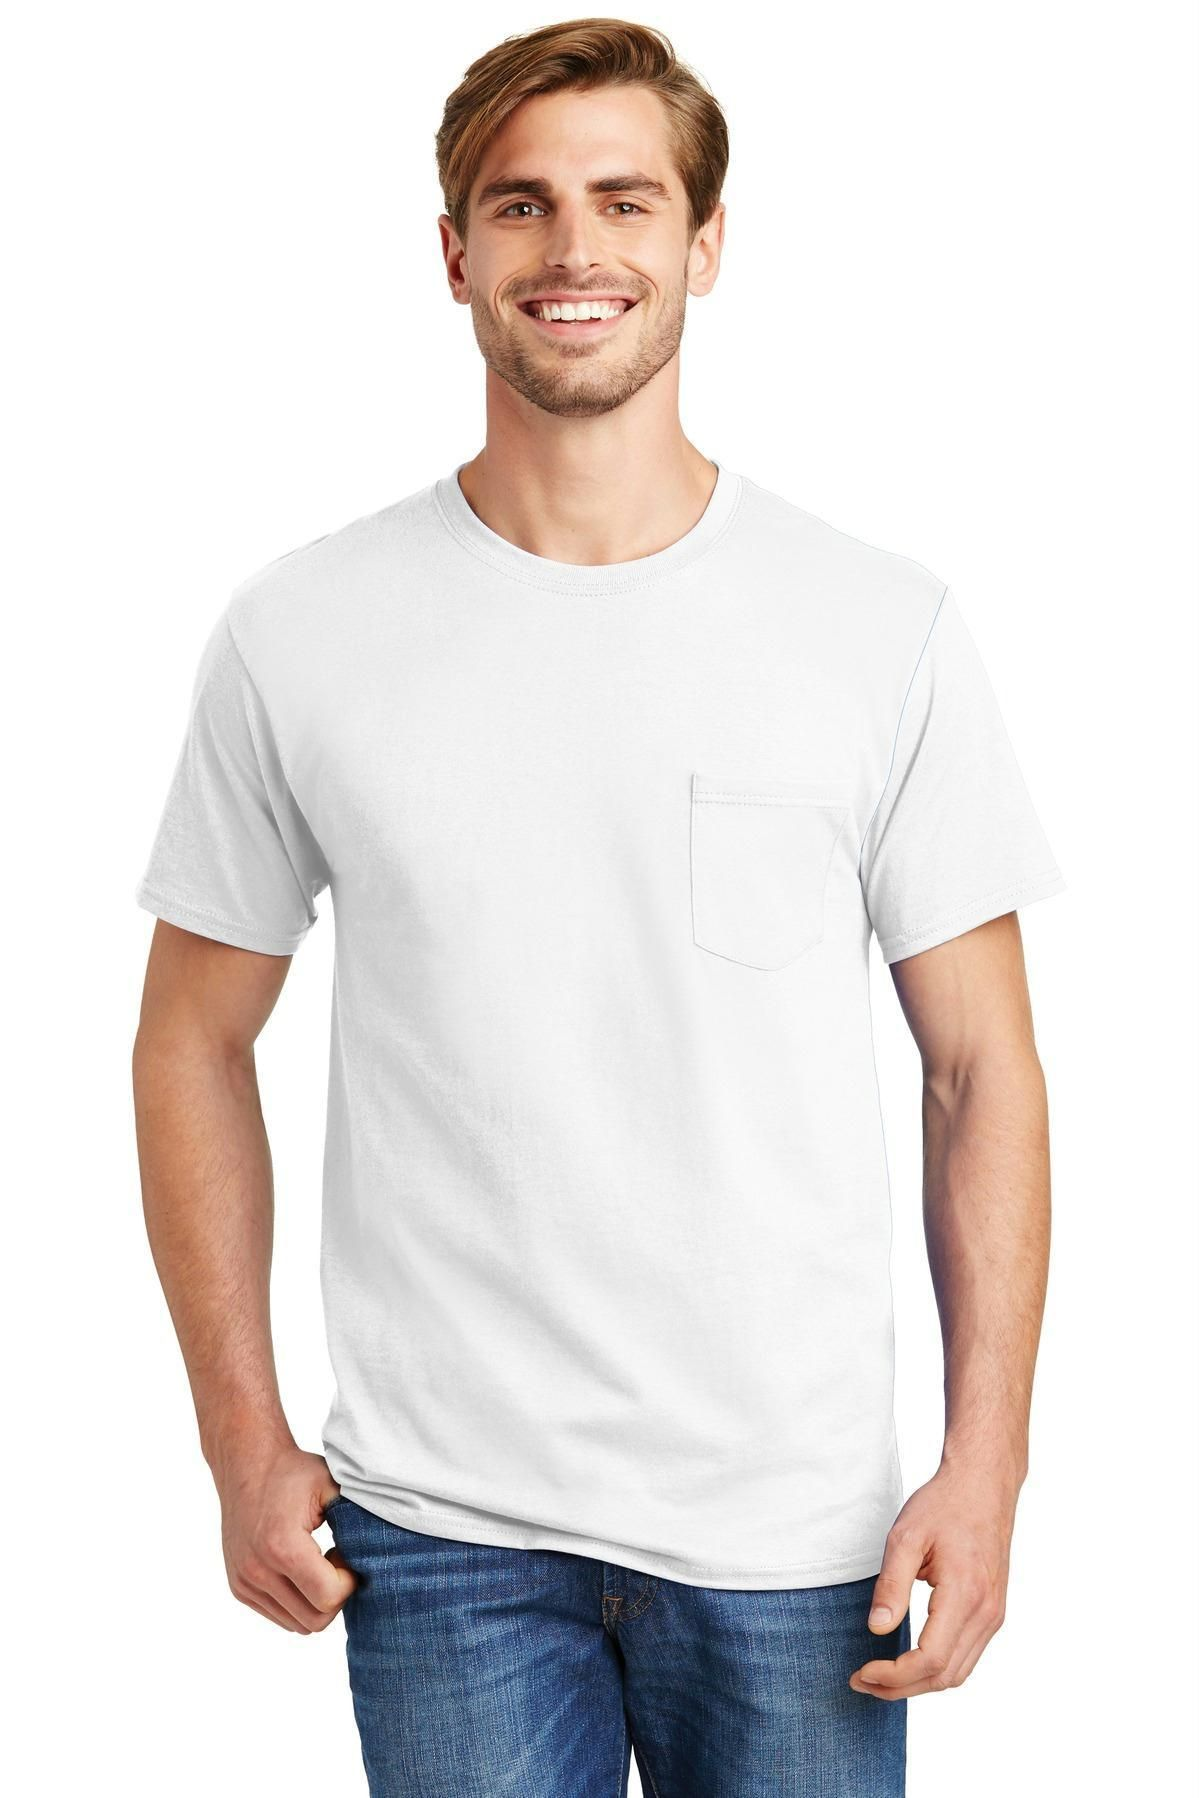 c2642516 Hanes - Tagless 100% Cotton T-Shirt with Pocket 5590   Products ...